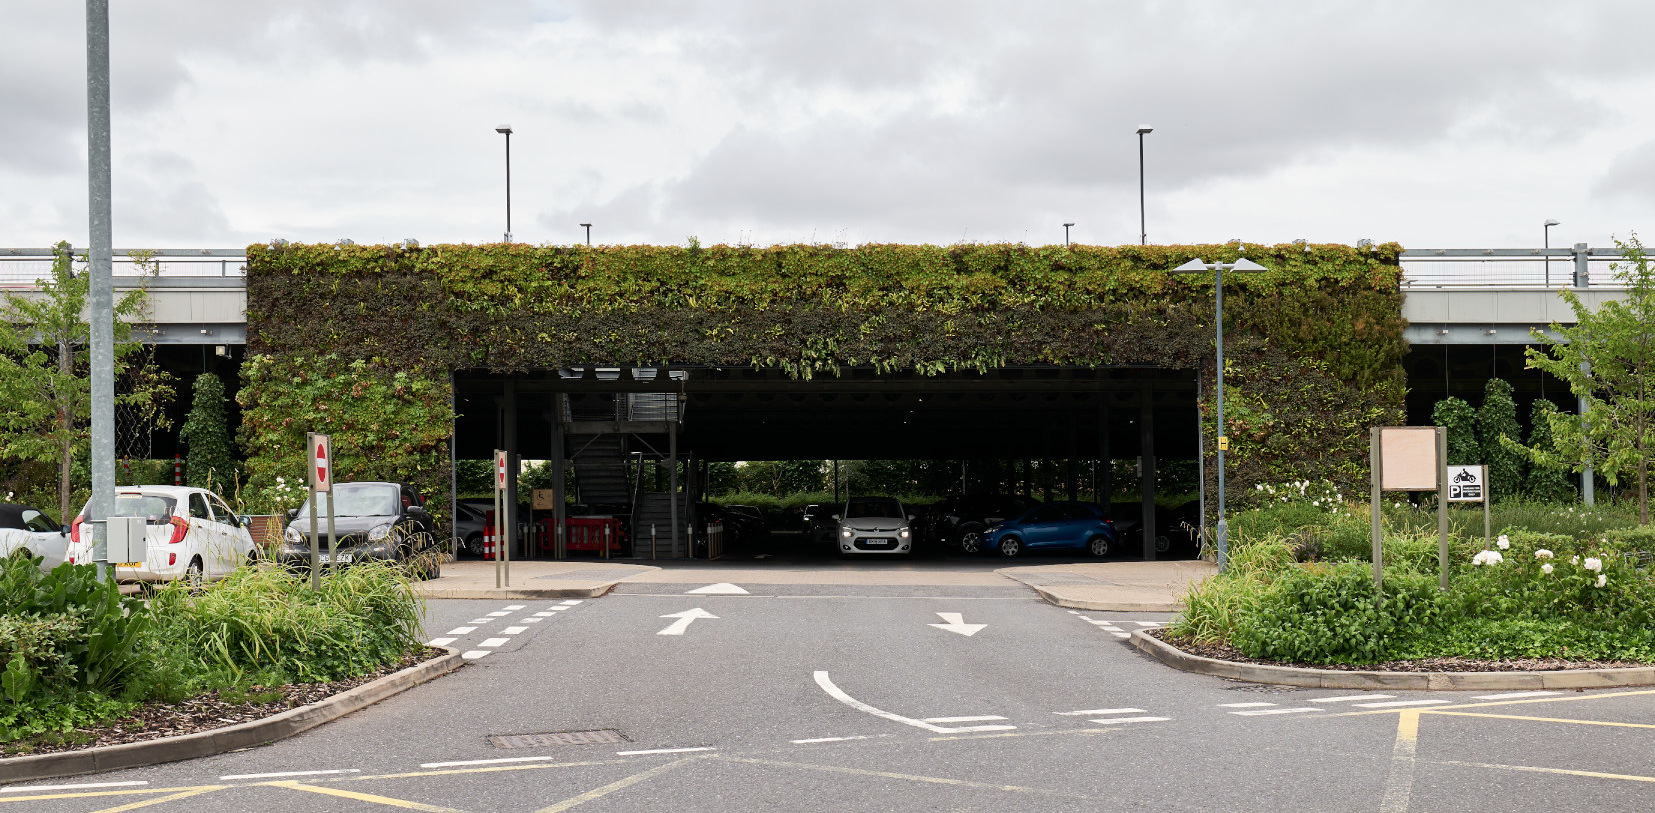 Cheshire Oaks Green Wall Car Park Entrance